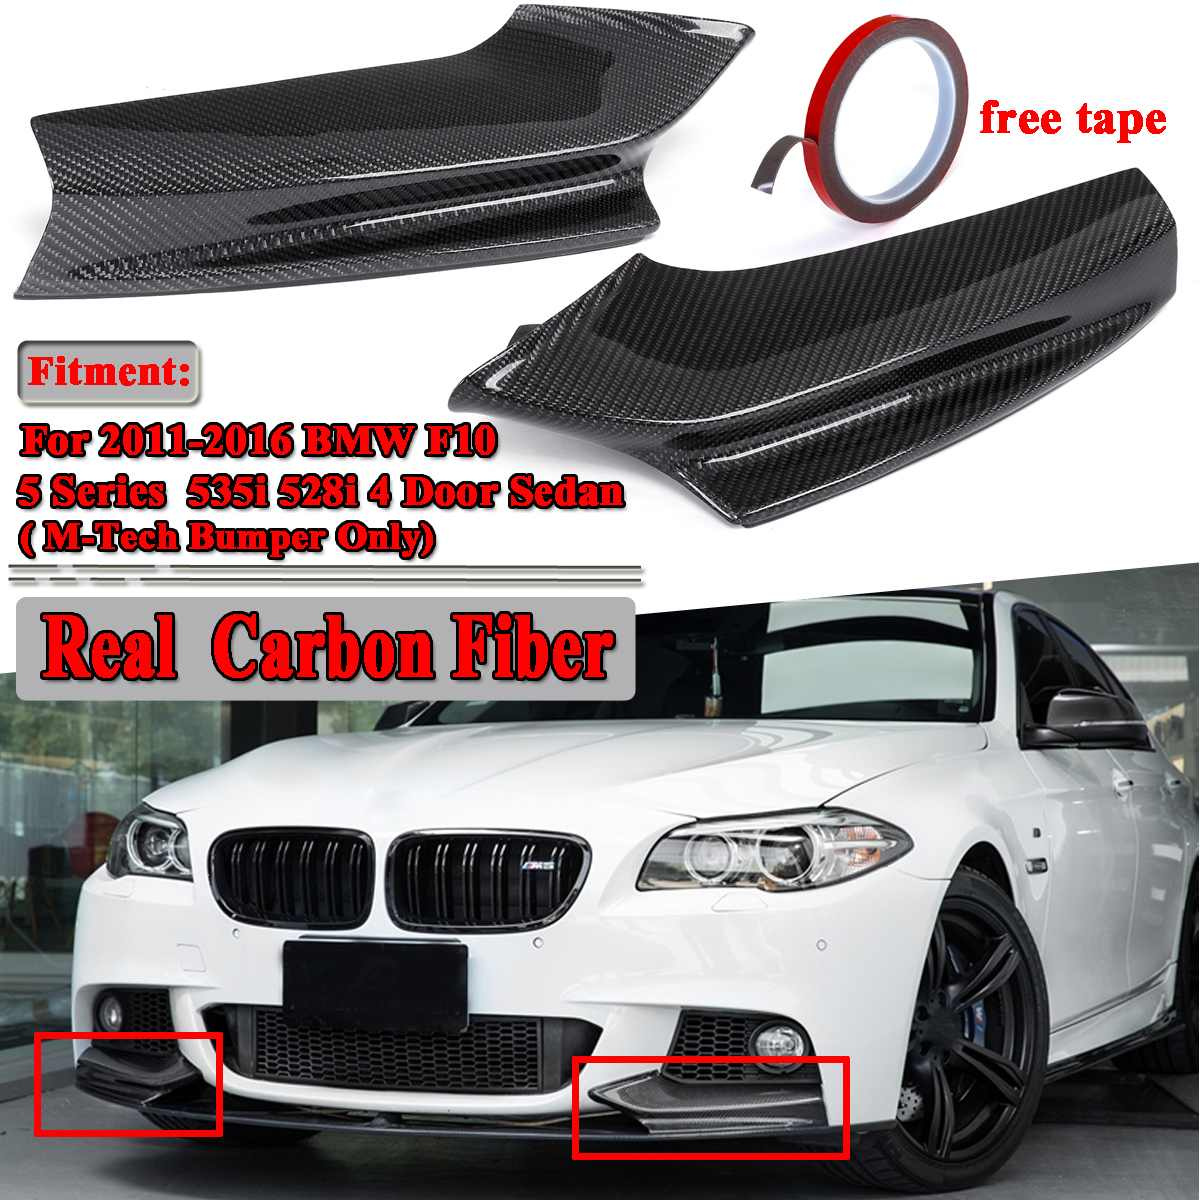 A Pair Real Carbon Fiber <font><b>F10</b></font> Car Front <font><b>Bumper</b></font> Splitter Lip Deflector Spoiler Aprons For <font><b>BMW</b></font> <font><b>F10</b></font> 5 Series 535i 528i 4Dr 2011-2016 image